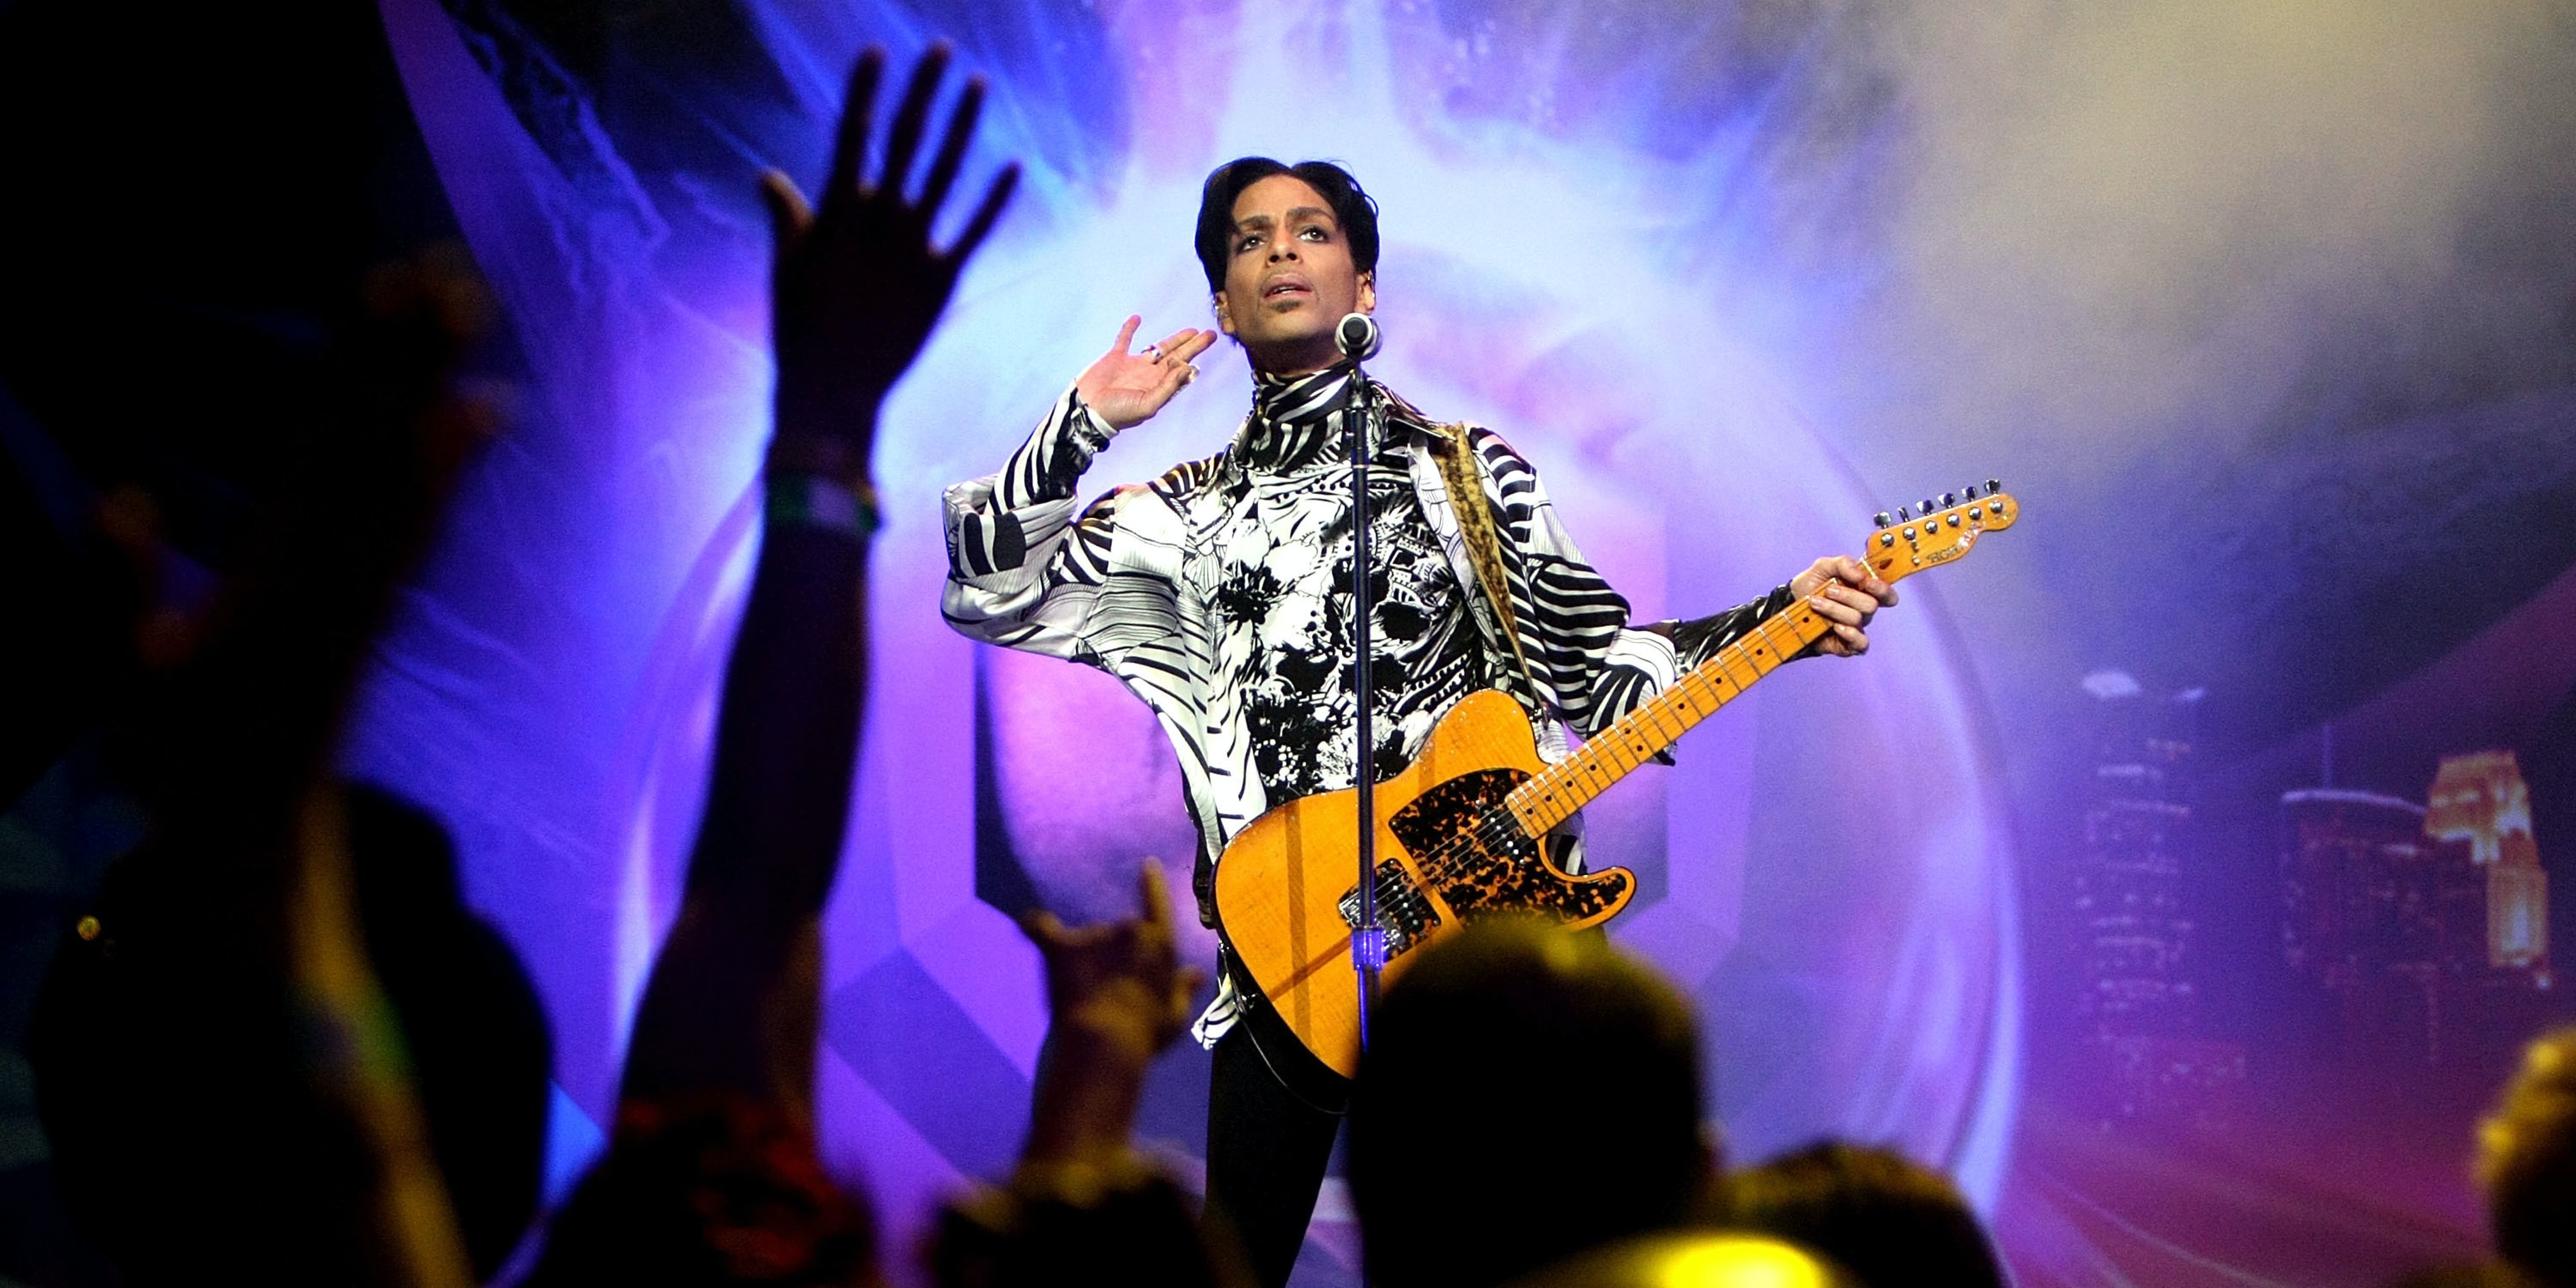 Prince at a performance in LA in 2009.